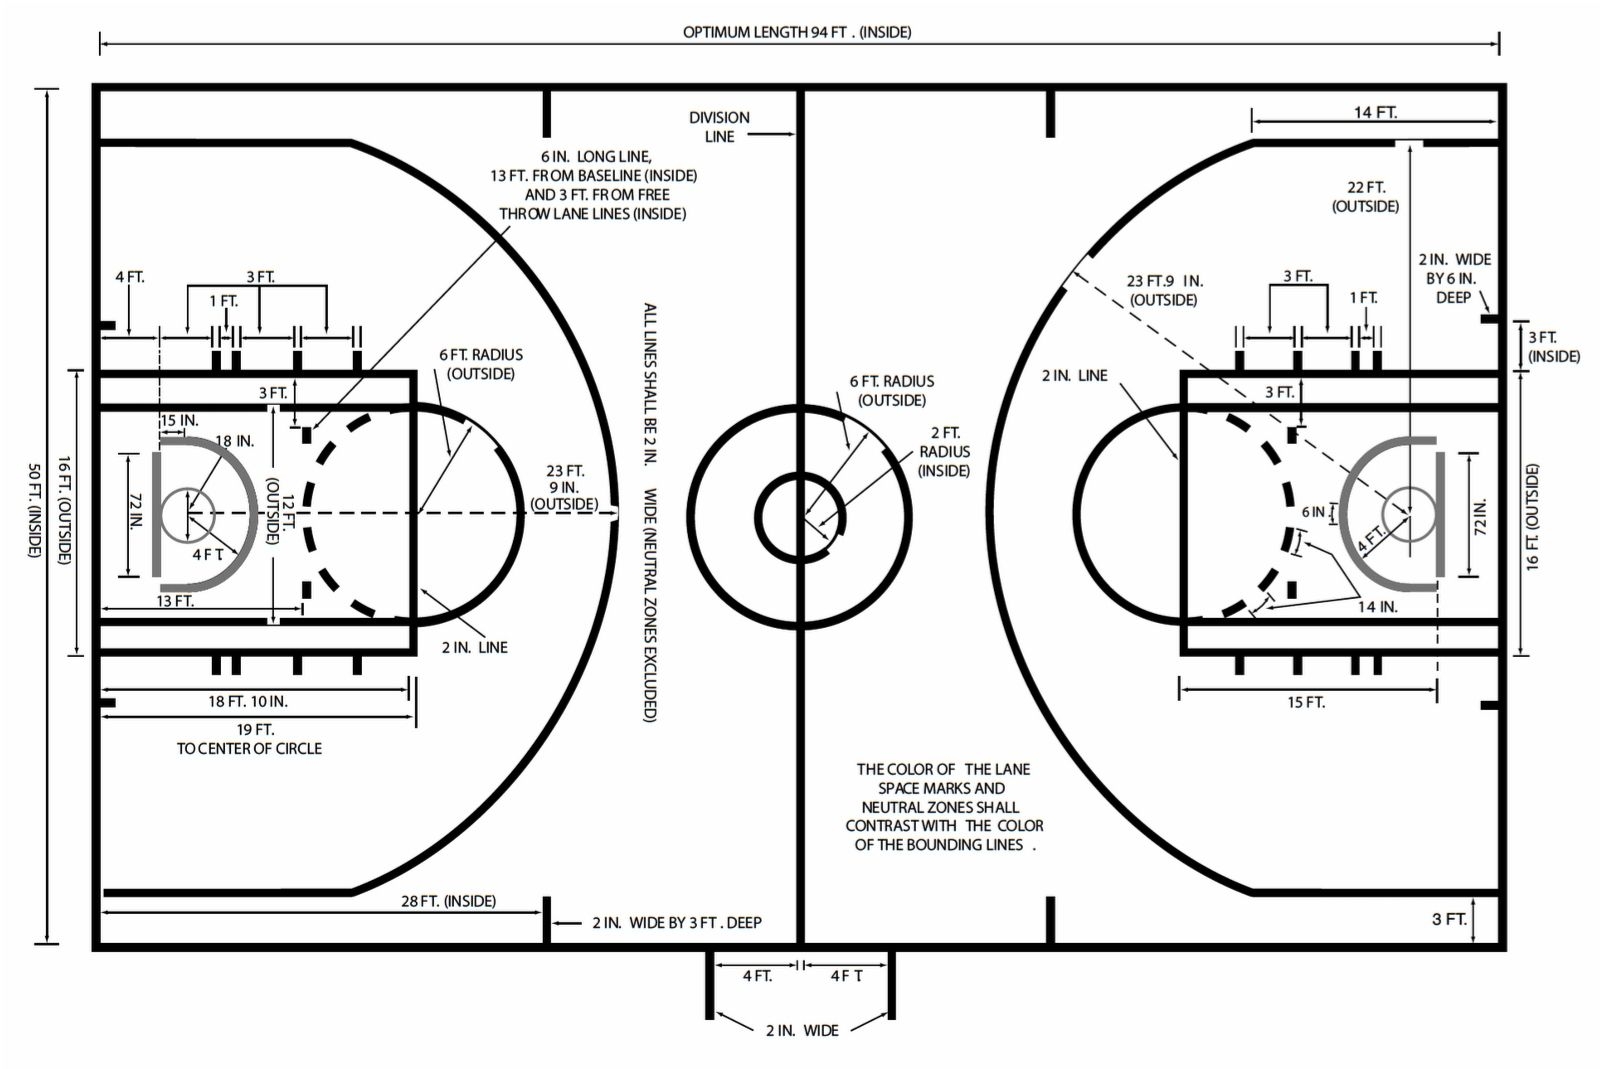 Wallpapermill Com Basketball Court Size Basketball Court Layout Basketball Court Measurements